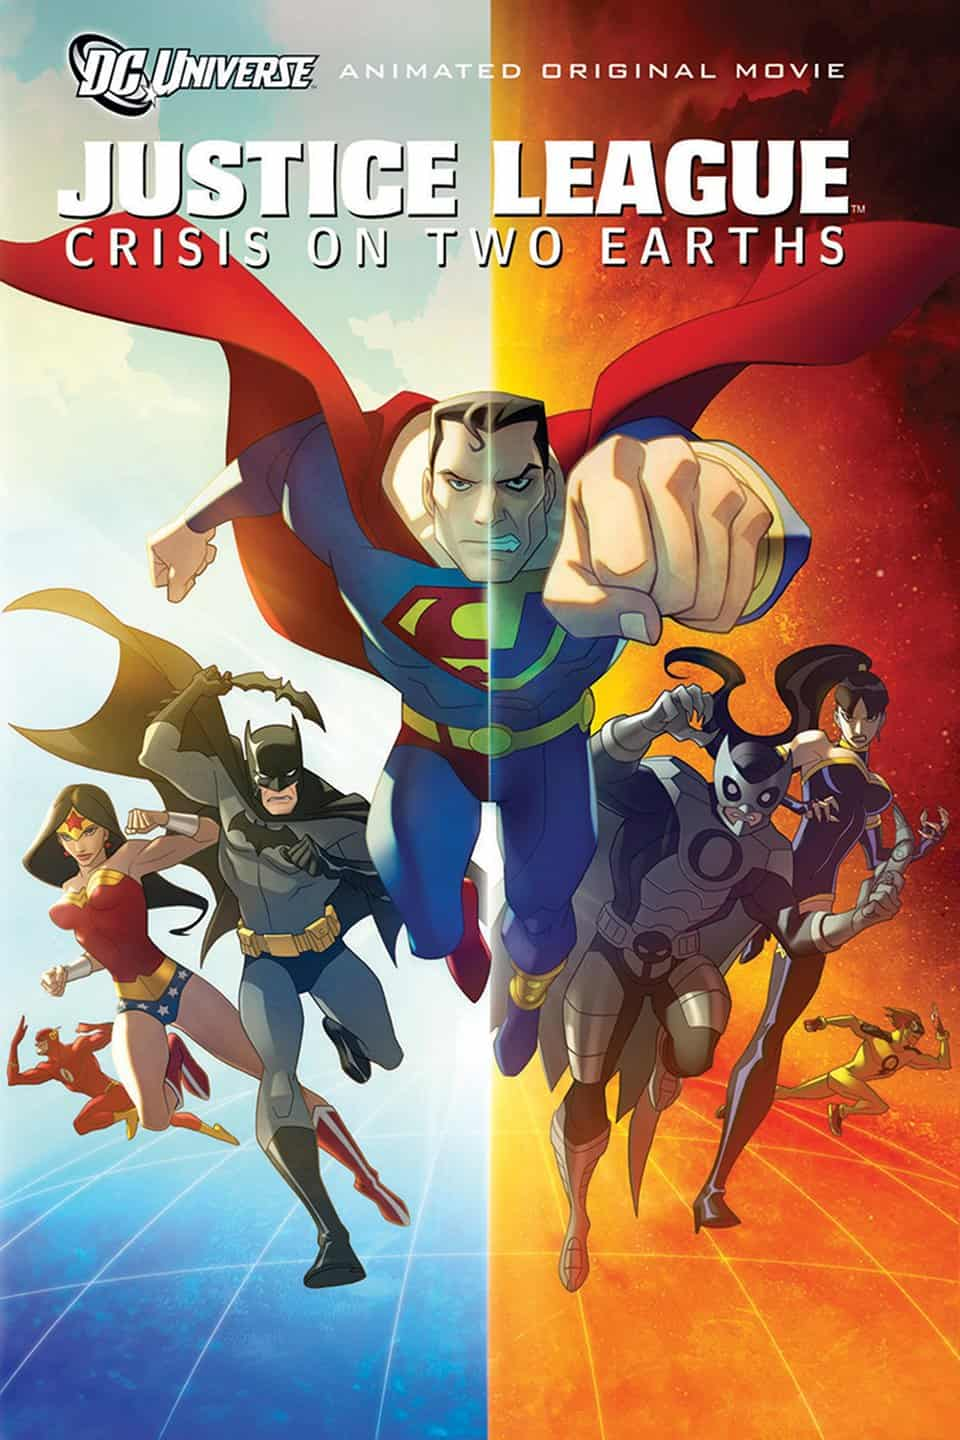 Justice League: Crisis on Two Earths, 2010